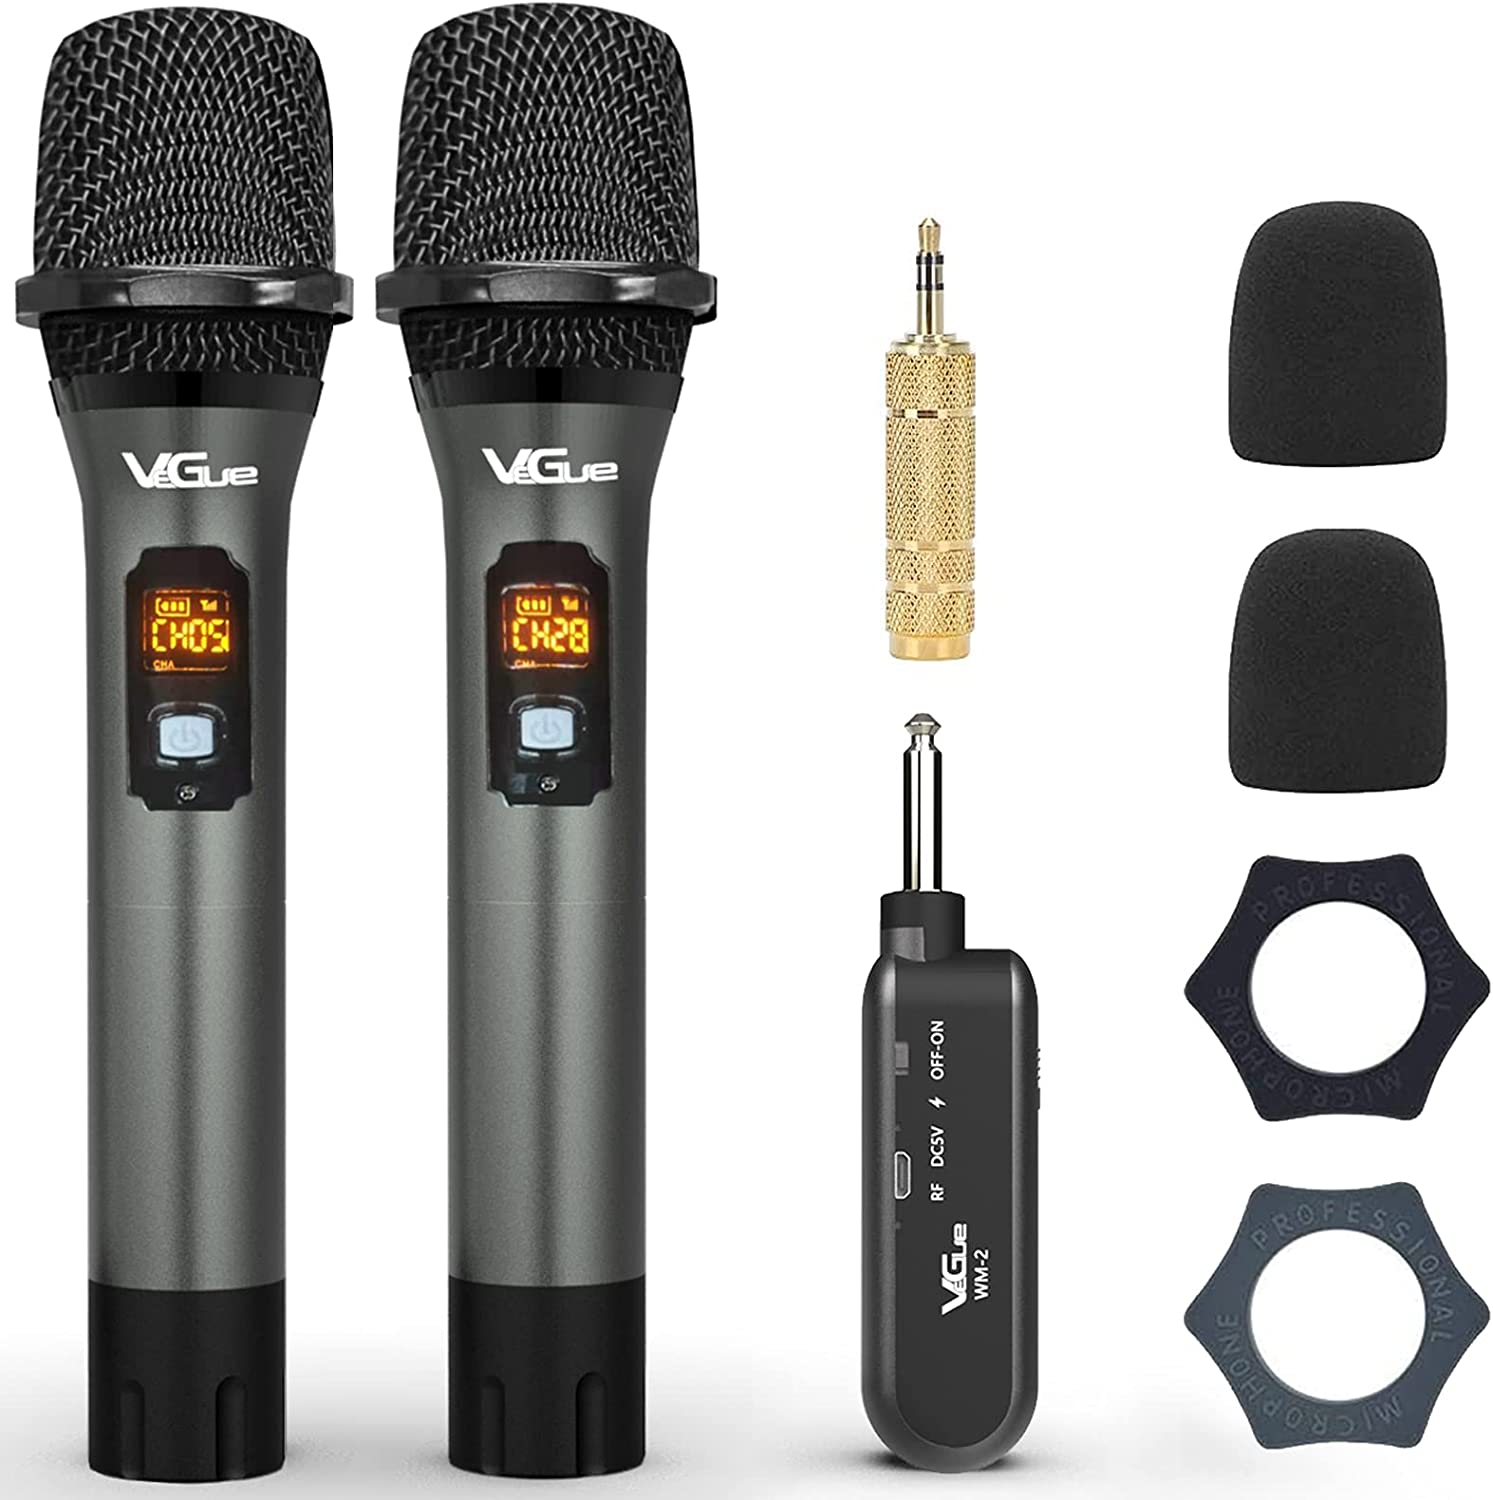 Wireless Microphone VeGue Popular products UHF Cordless Mi Dual Handheld Free shipping Dynamic